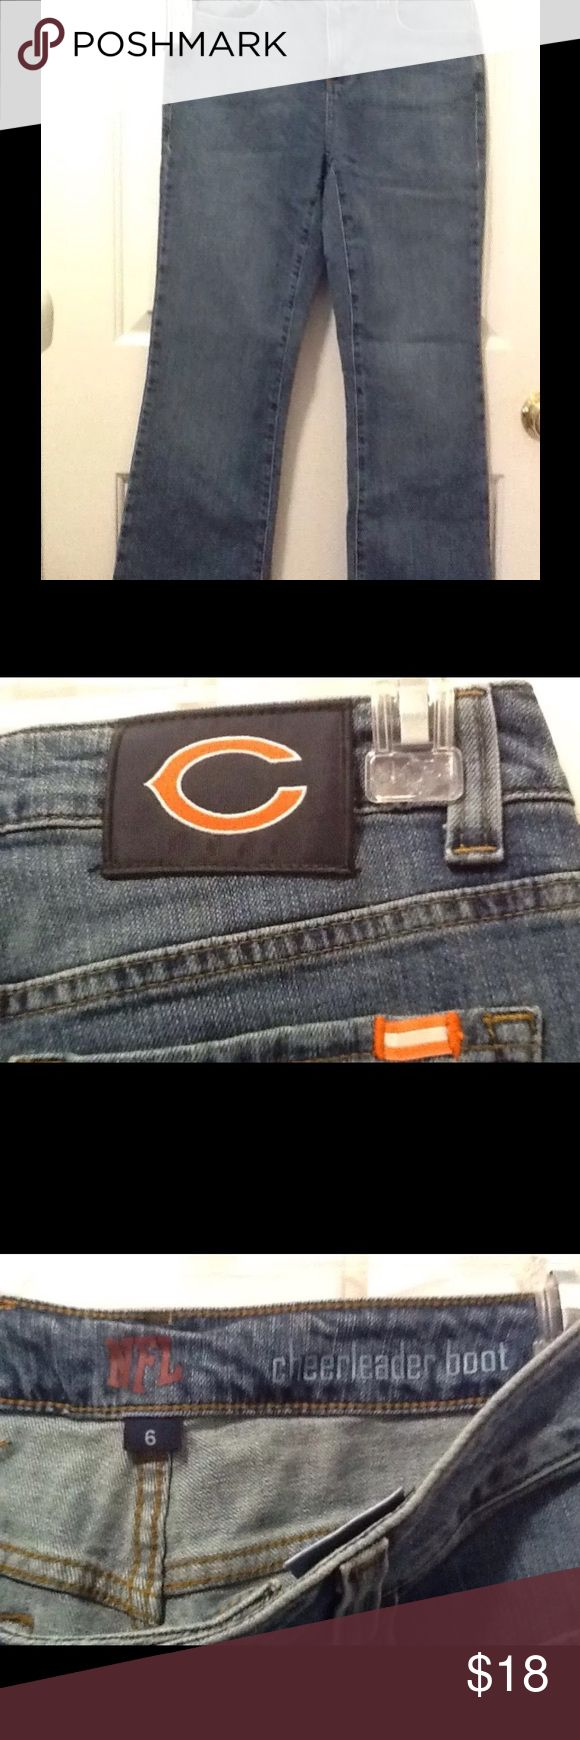 NFL Cheerleader Boot Jeans Chicago Bears NFL Cheerleader Boot Jeans Chicago Bears . Women's Size 6x31. Tags still Attatched . NFL Team Apparel Jeans Boot Cut